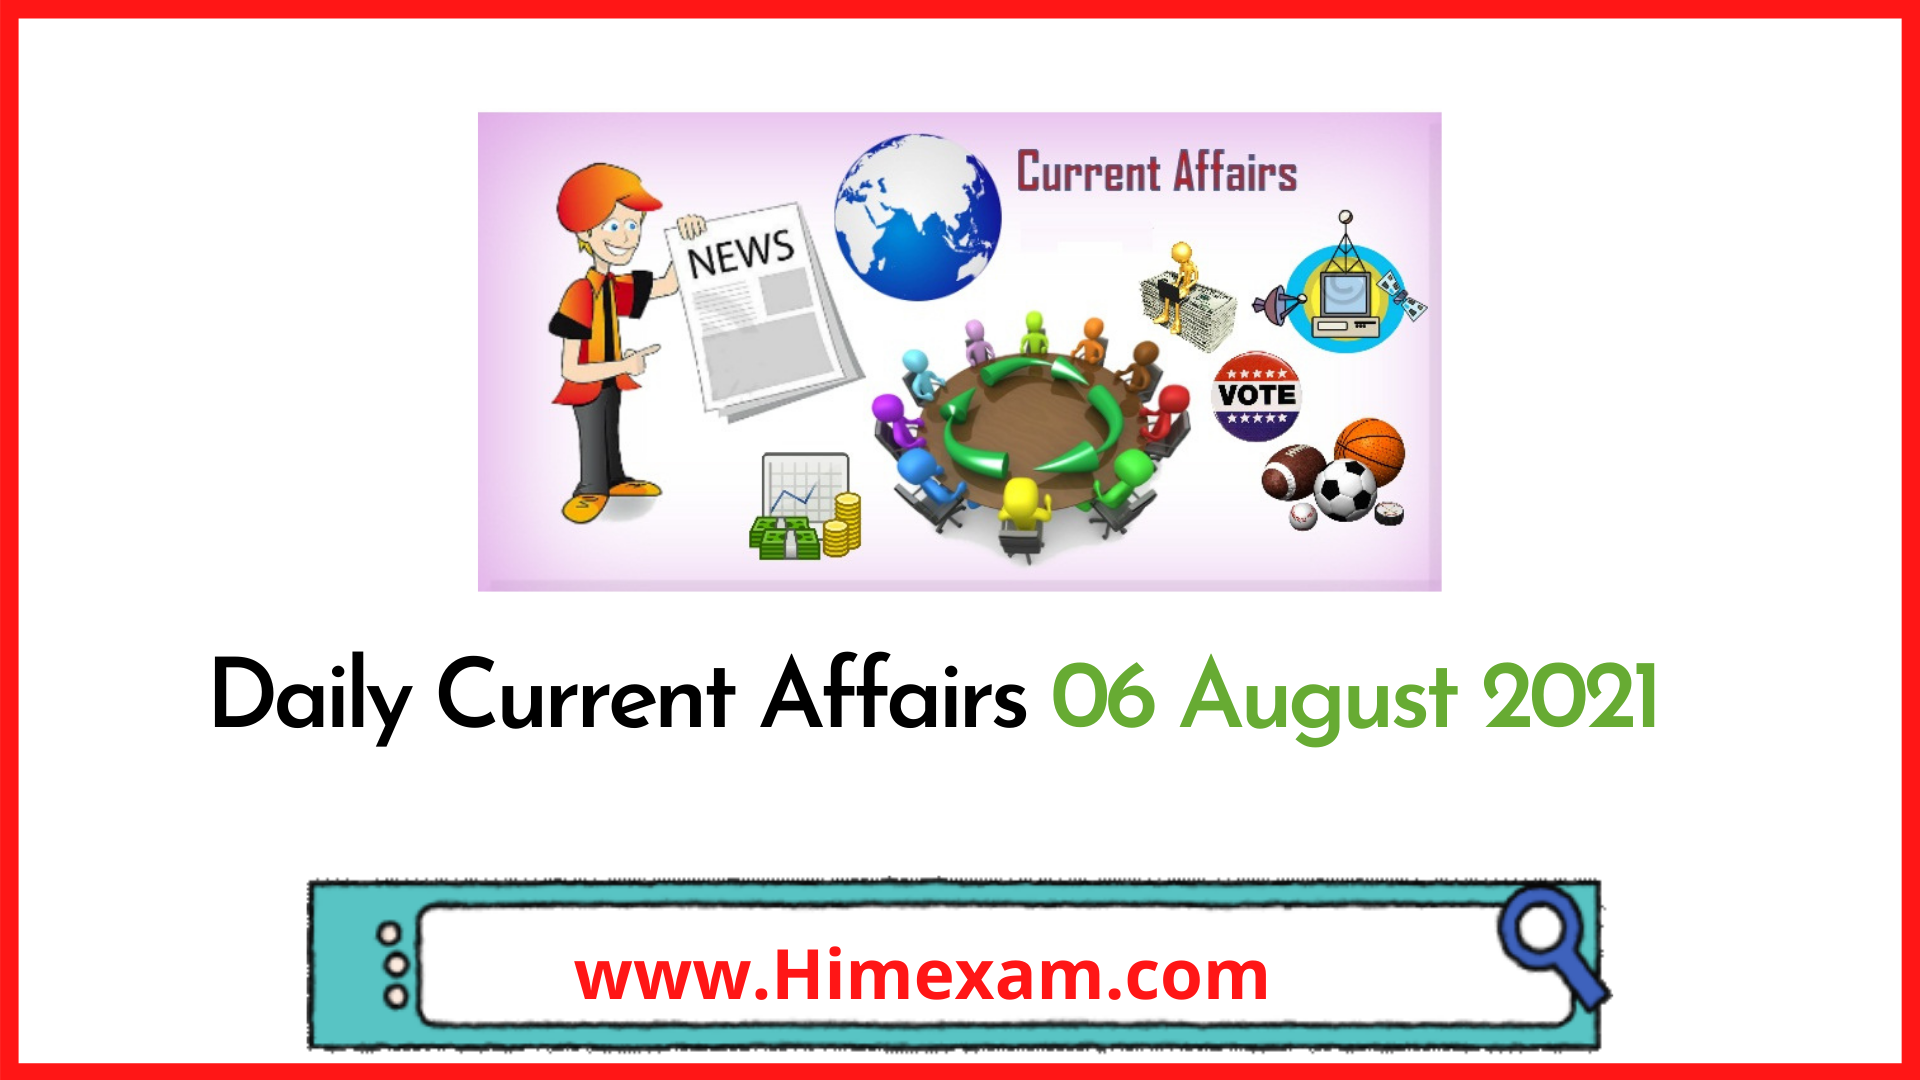 Daily Current Affairs 06 August 2021